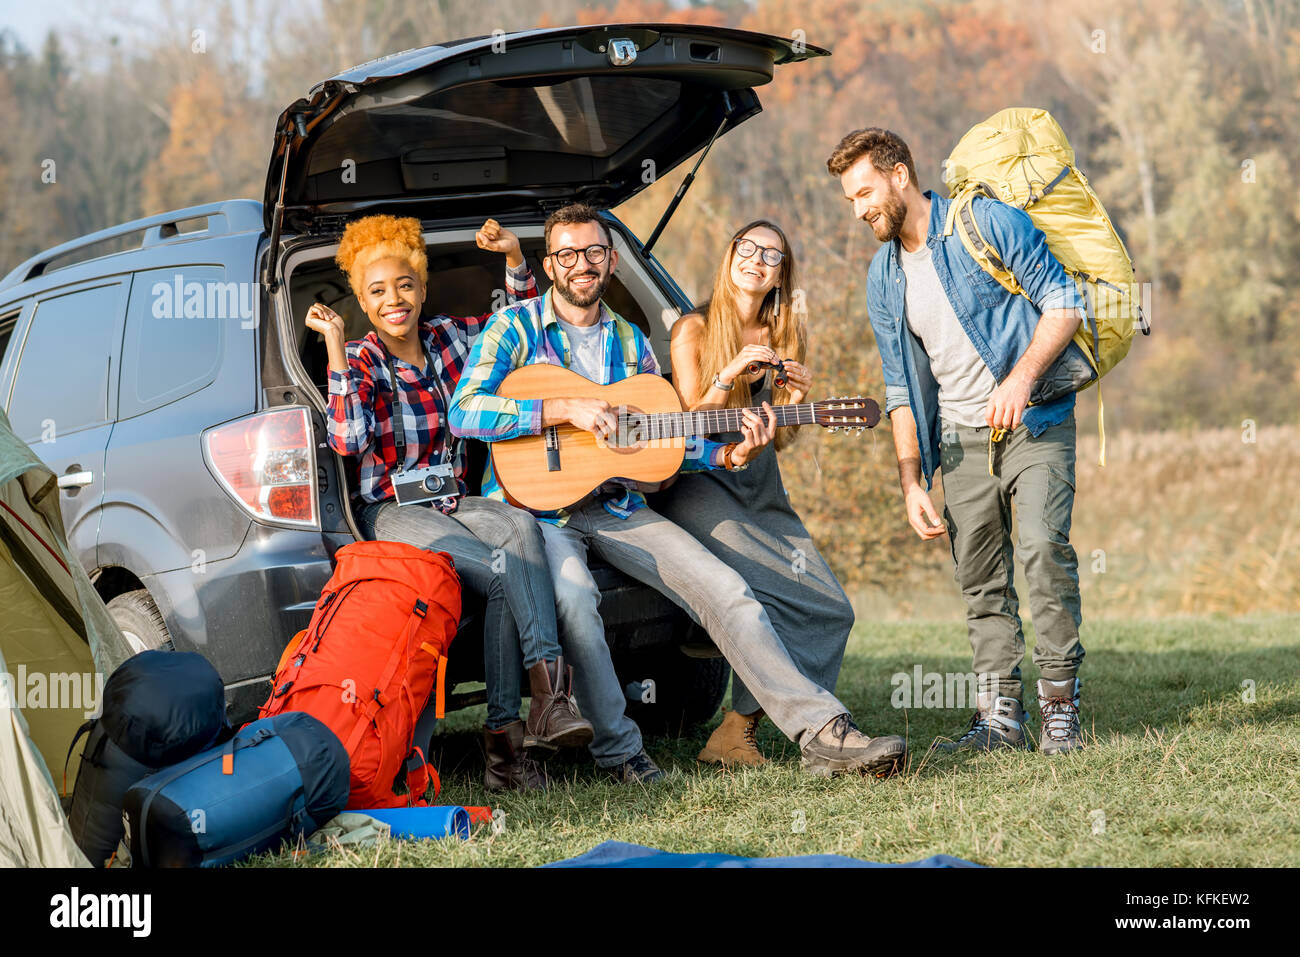 Friends during the outdoor recreation - Stock Image